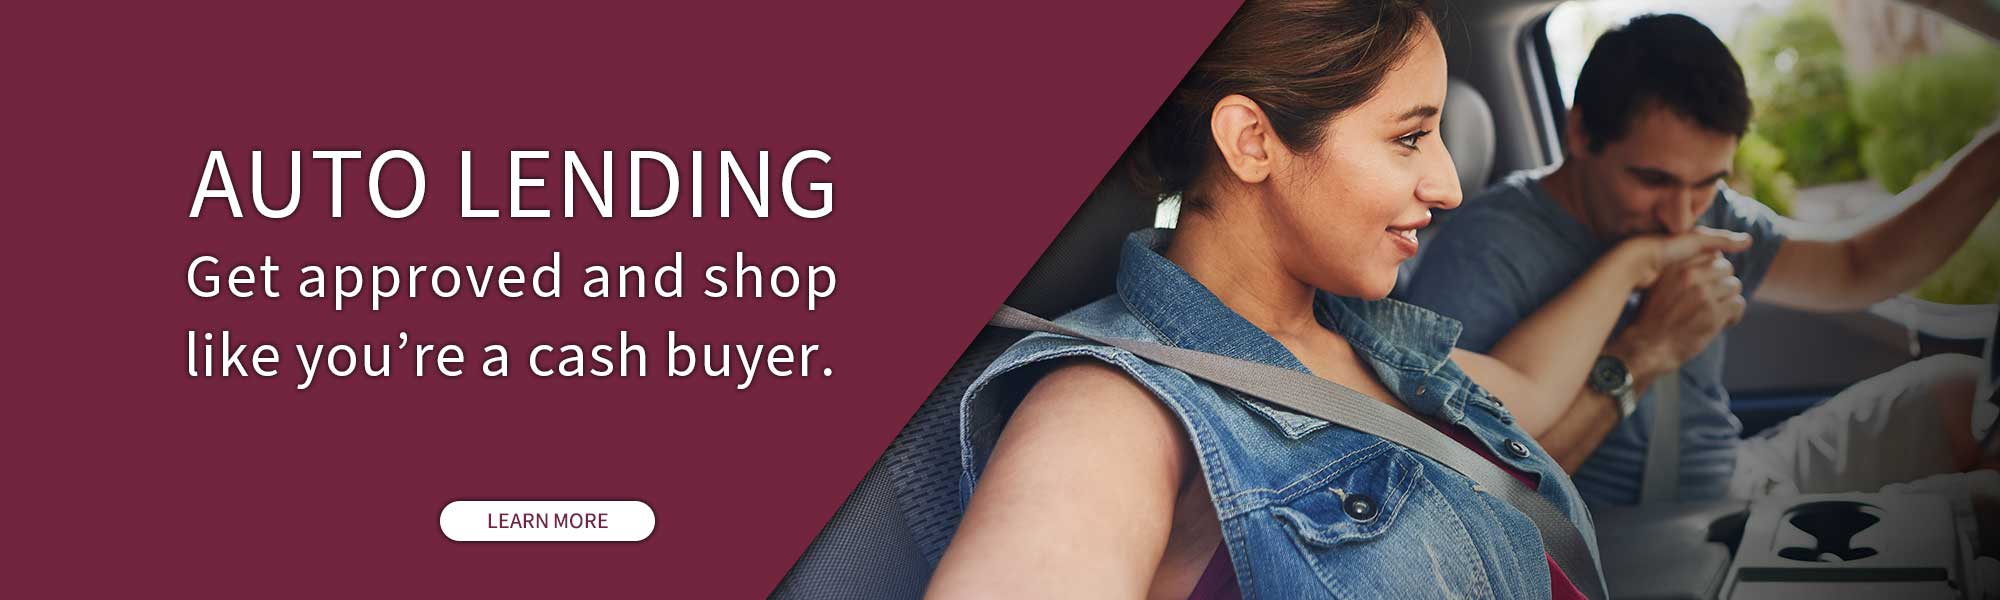 Link to auto lending